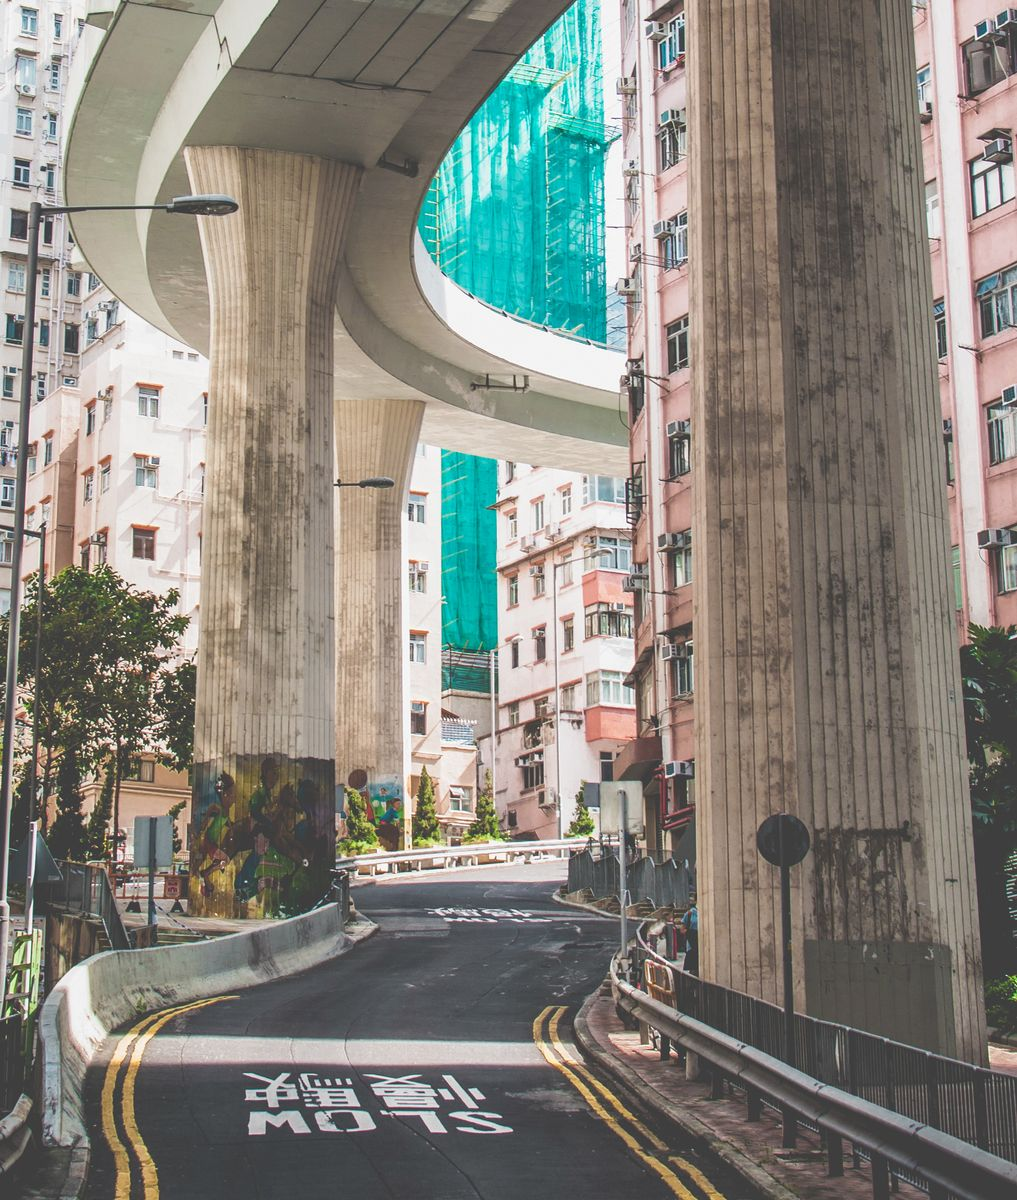 Road - Hong Kong